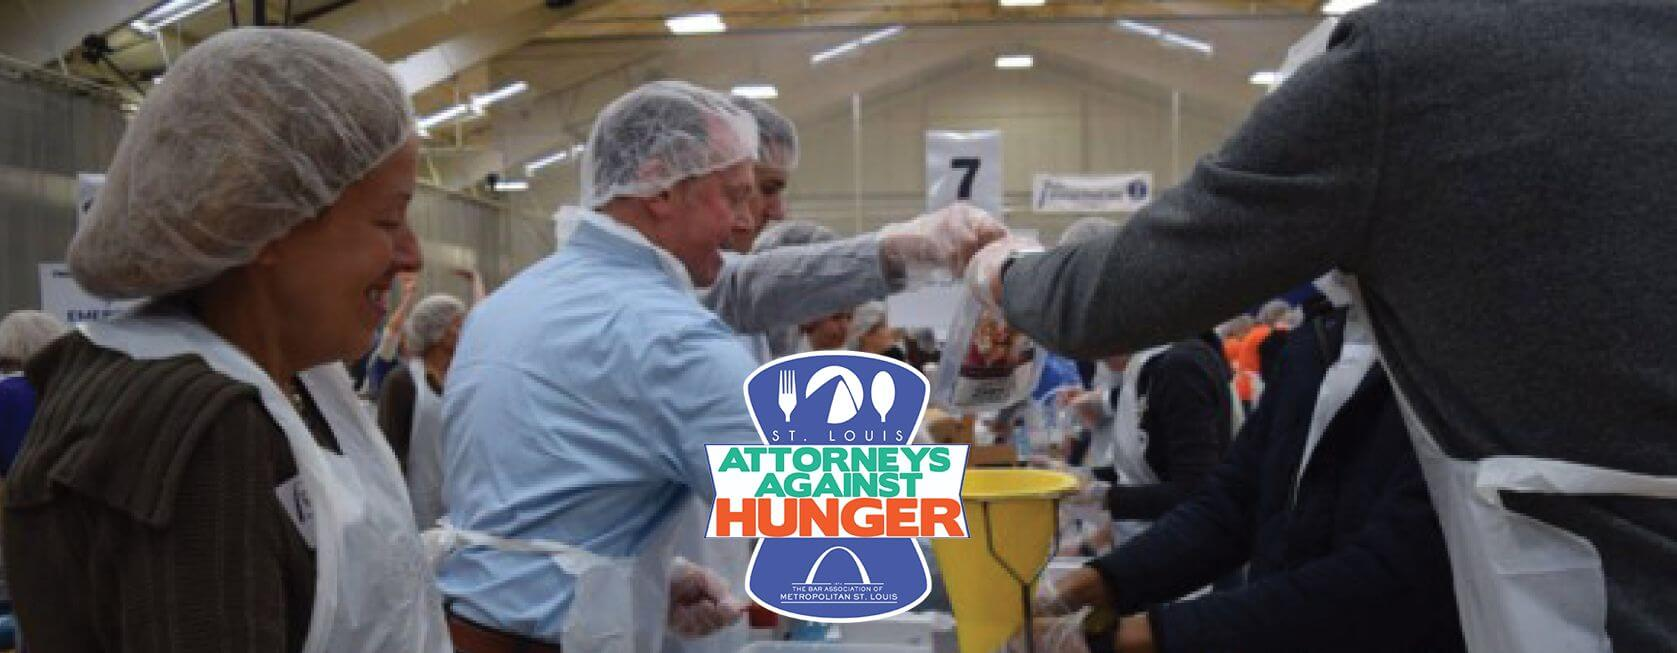 St. Louis Attorneys Against Hunger